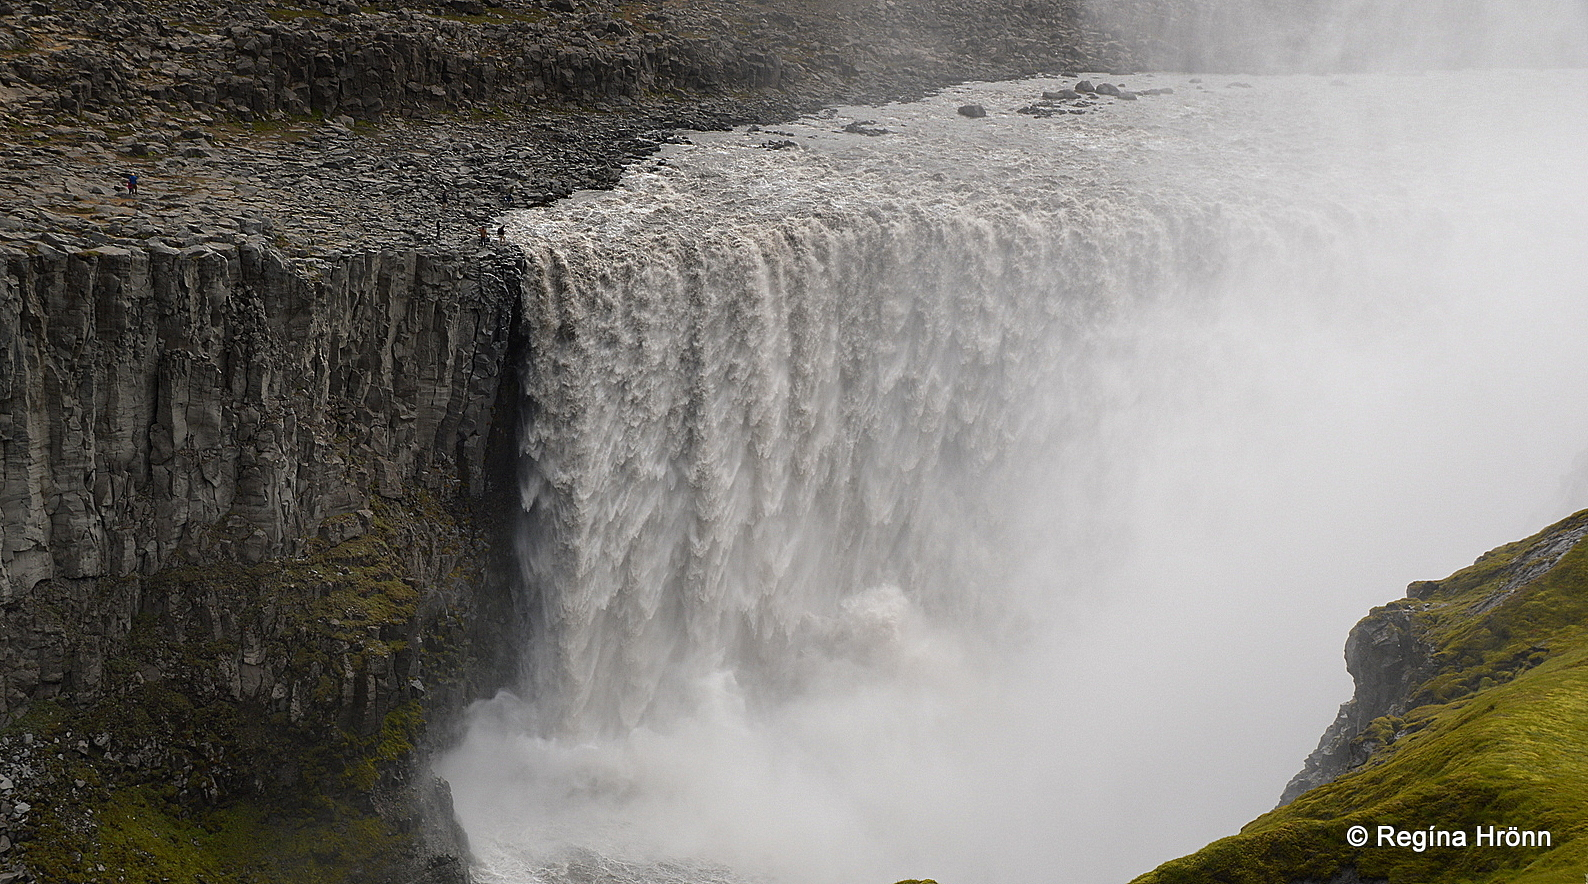 Dettifoss waterfall as seen from the observation platform on the west bank